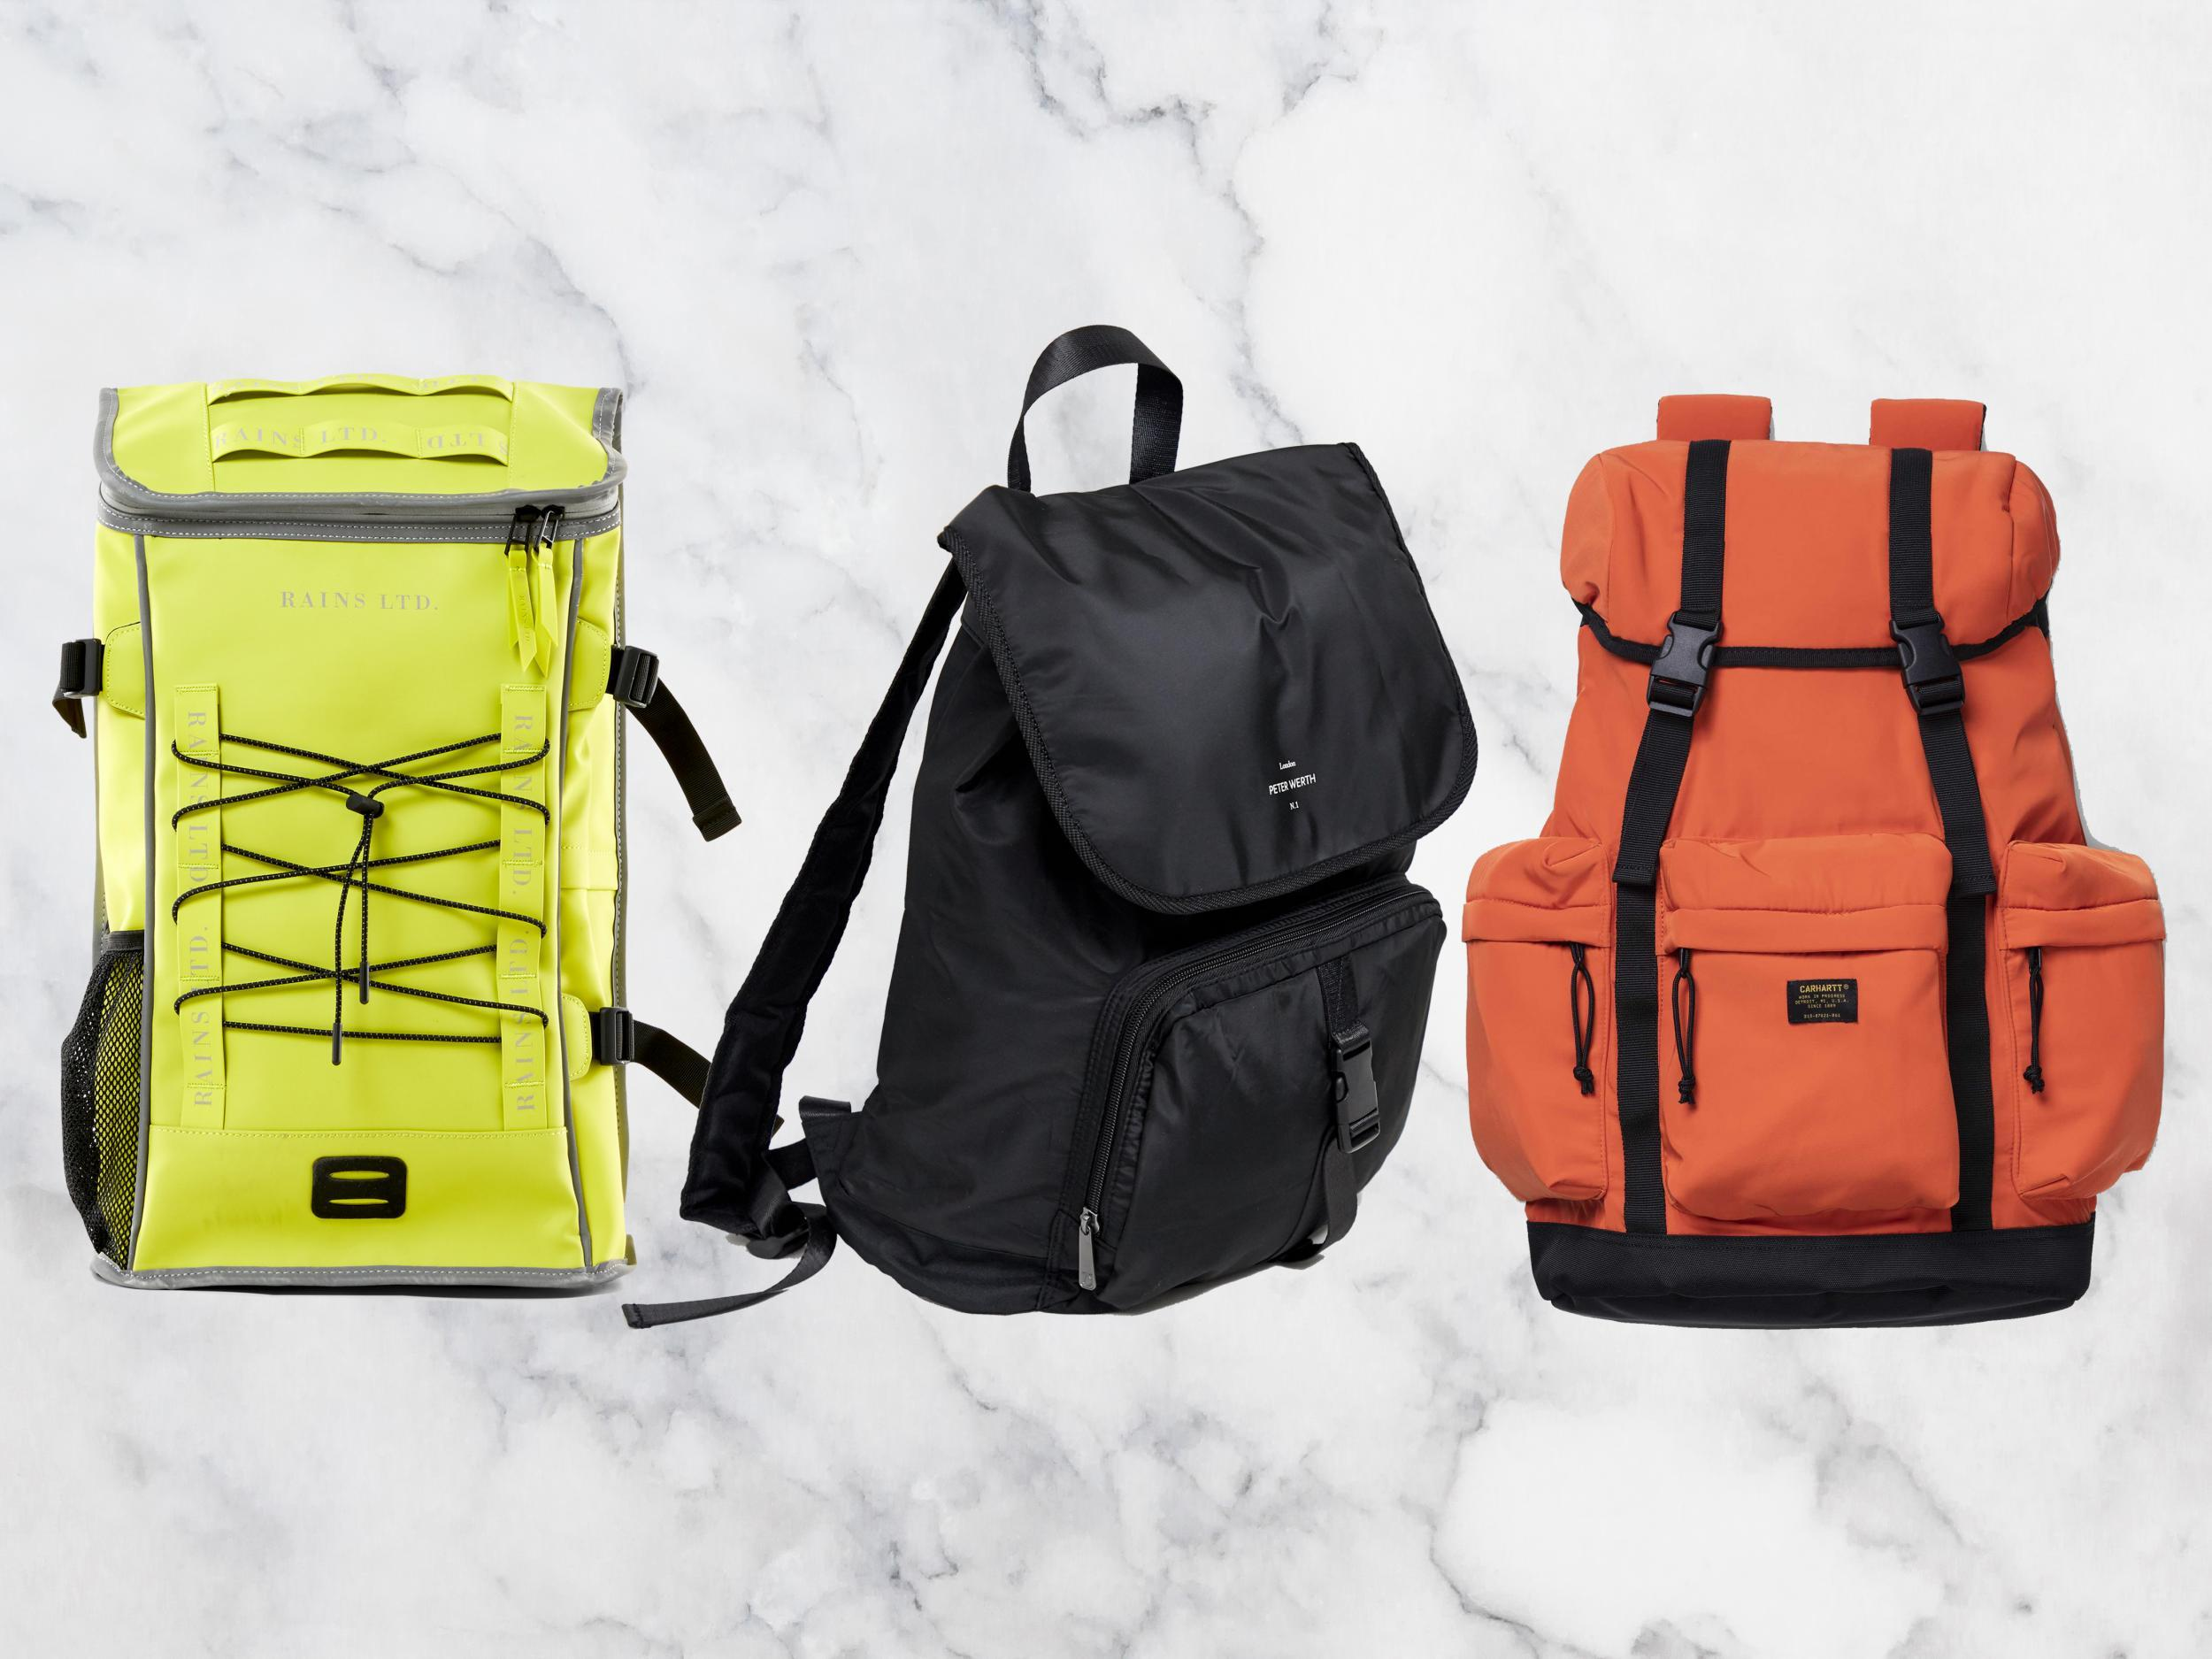 859e412e3a1914 Best backpack for men: From work laptops, to cycle commutes and light hikes